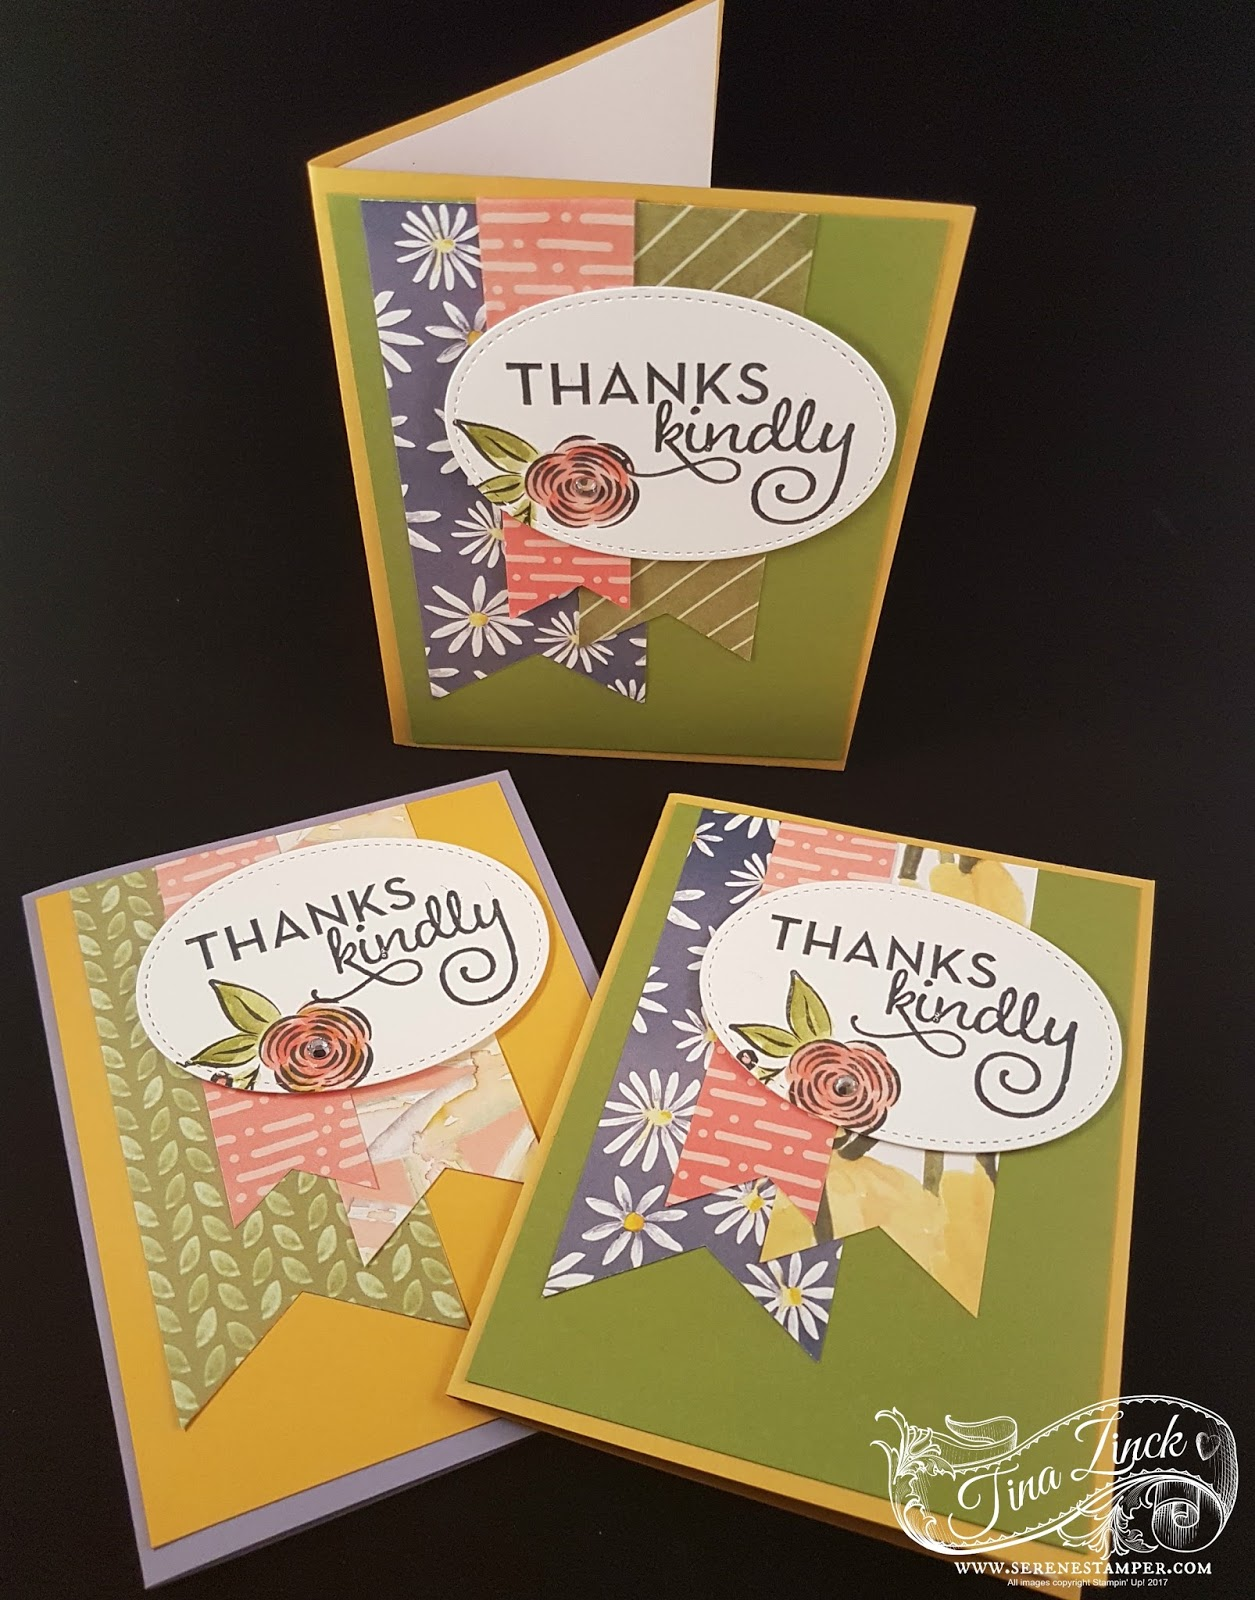 The Serene Stamper Perennial Birthday And One Big Meaning Quick Card